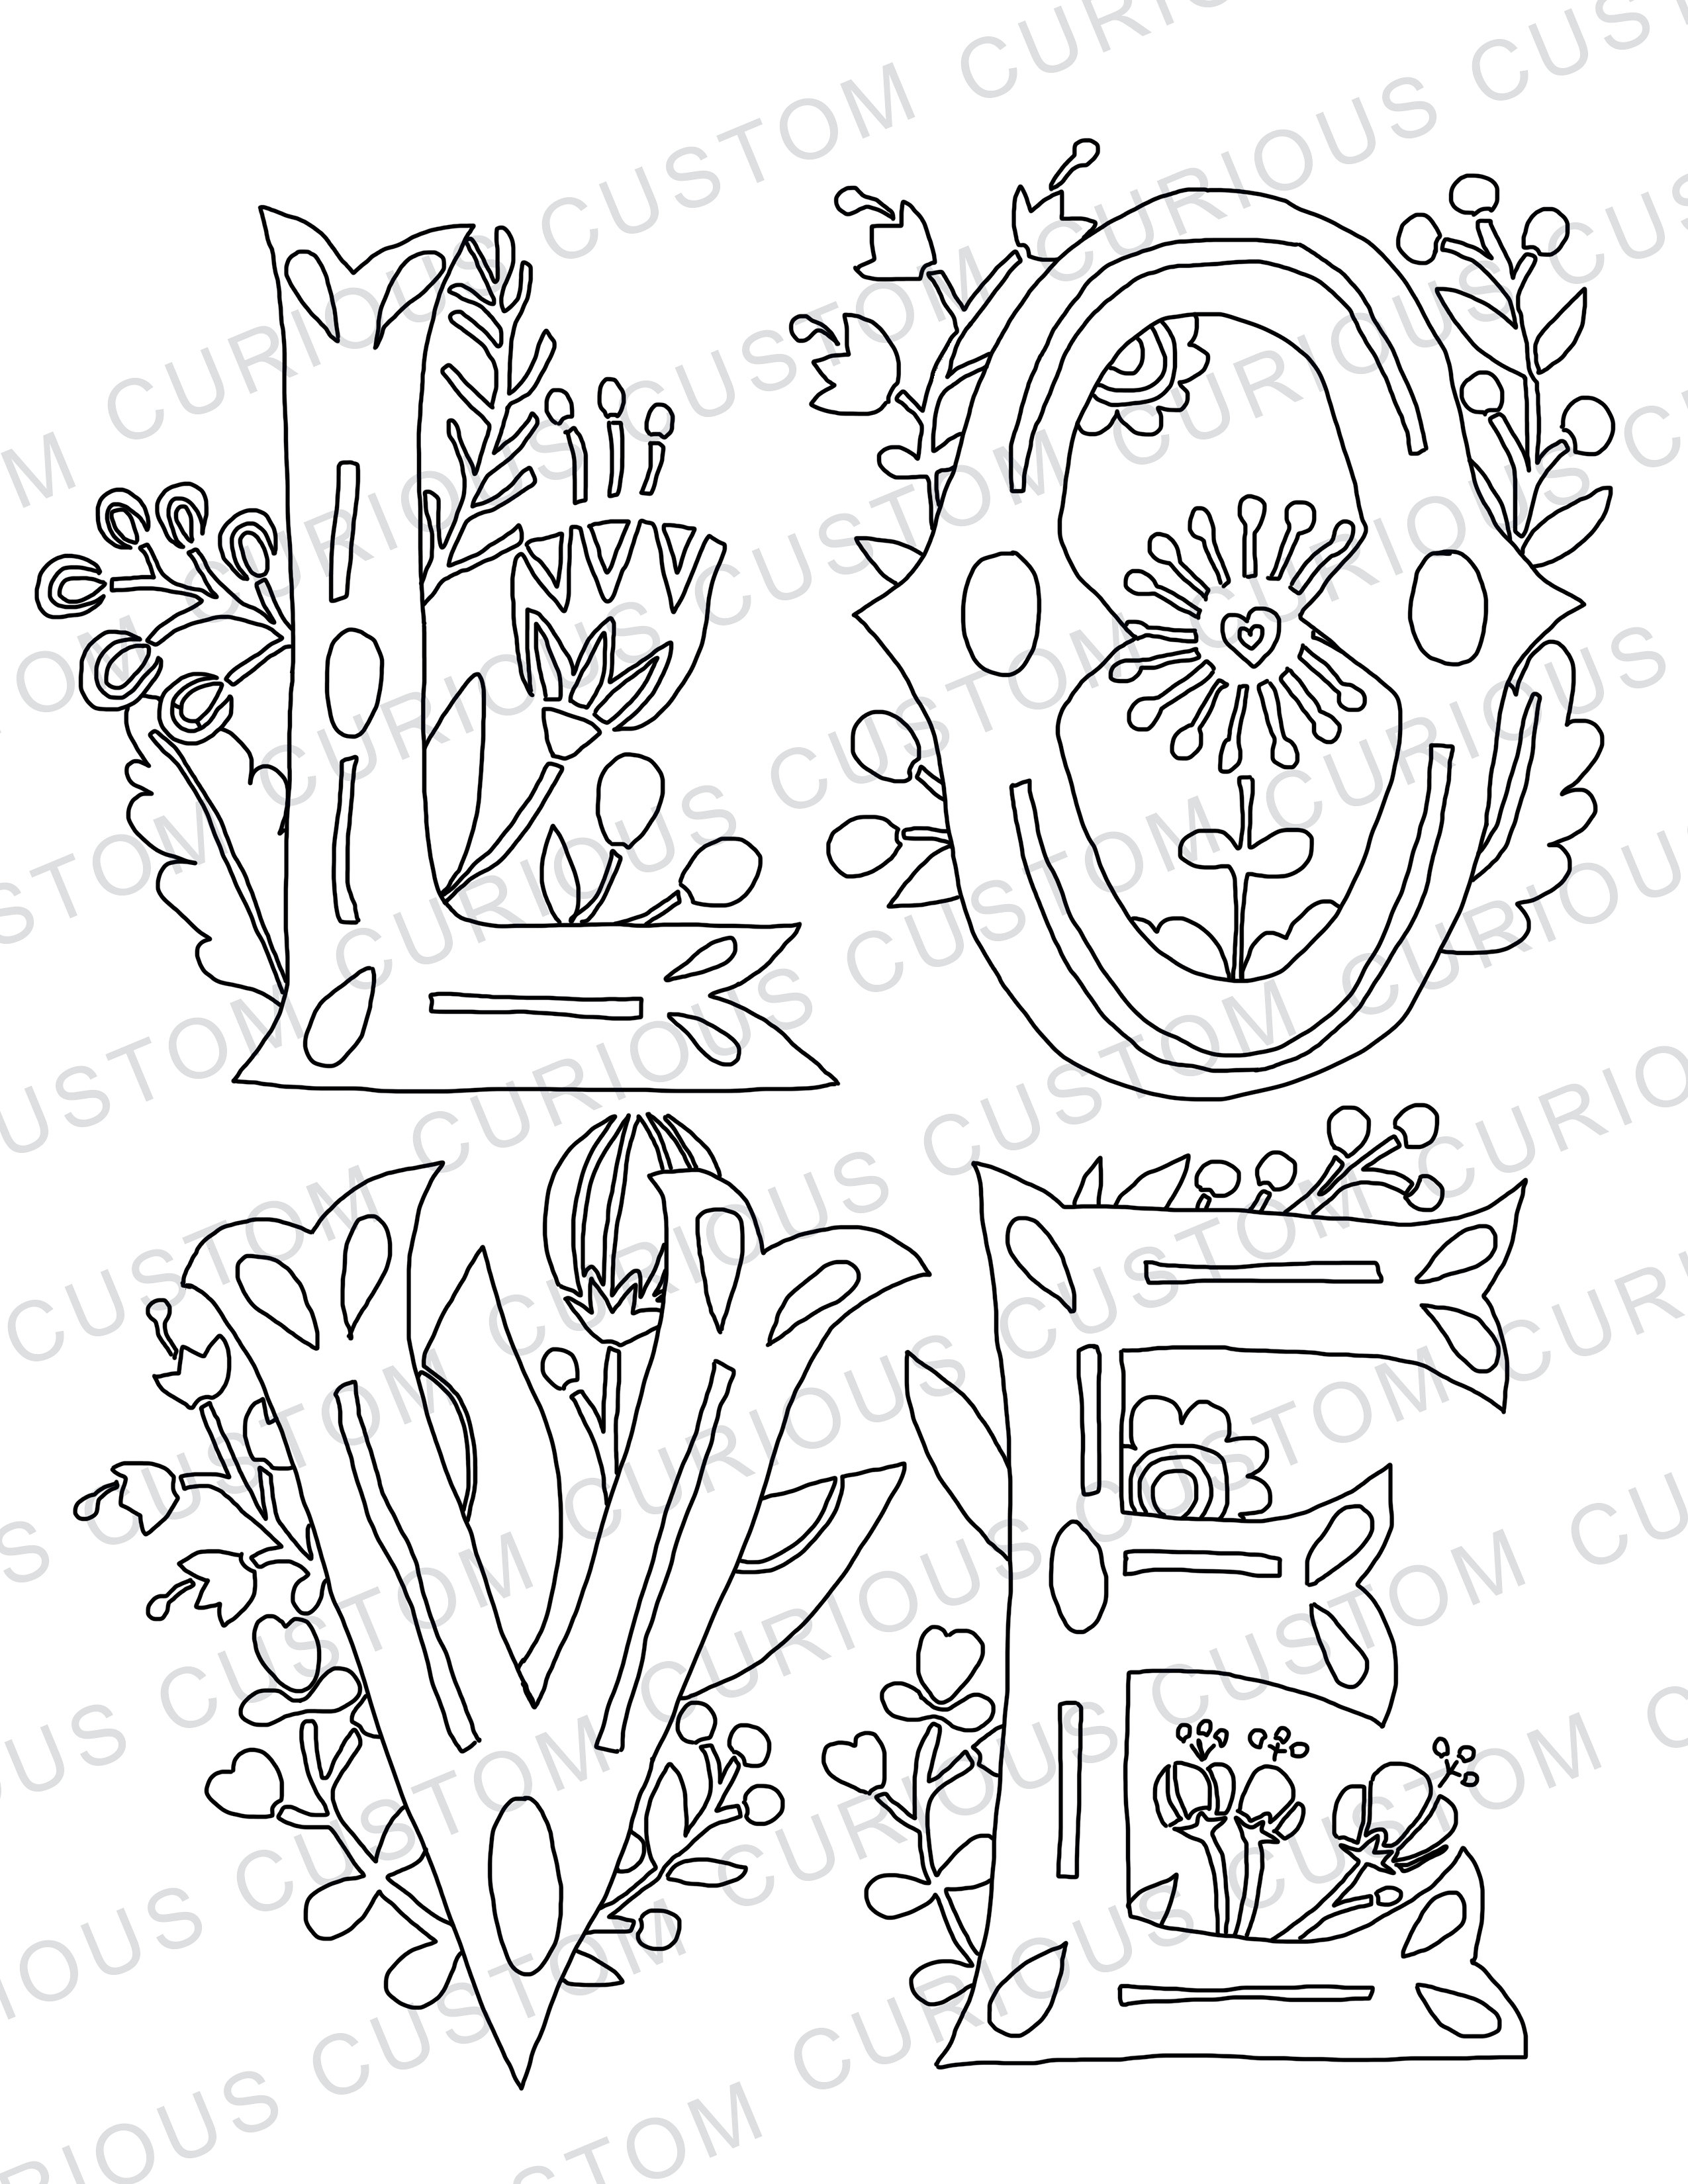 personalized coloring books wedding